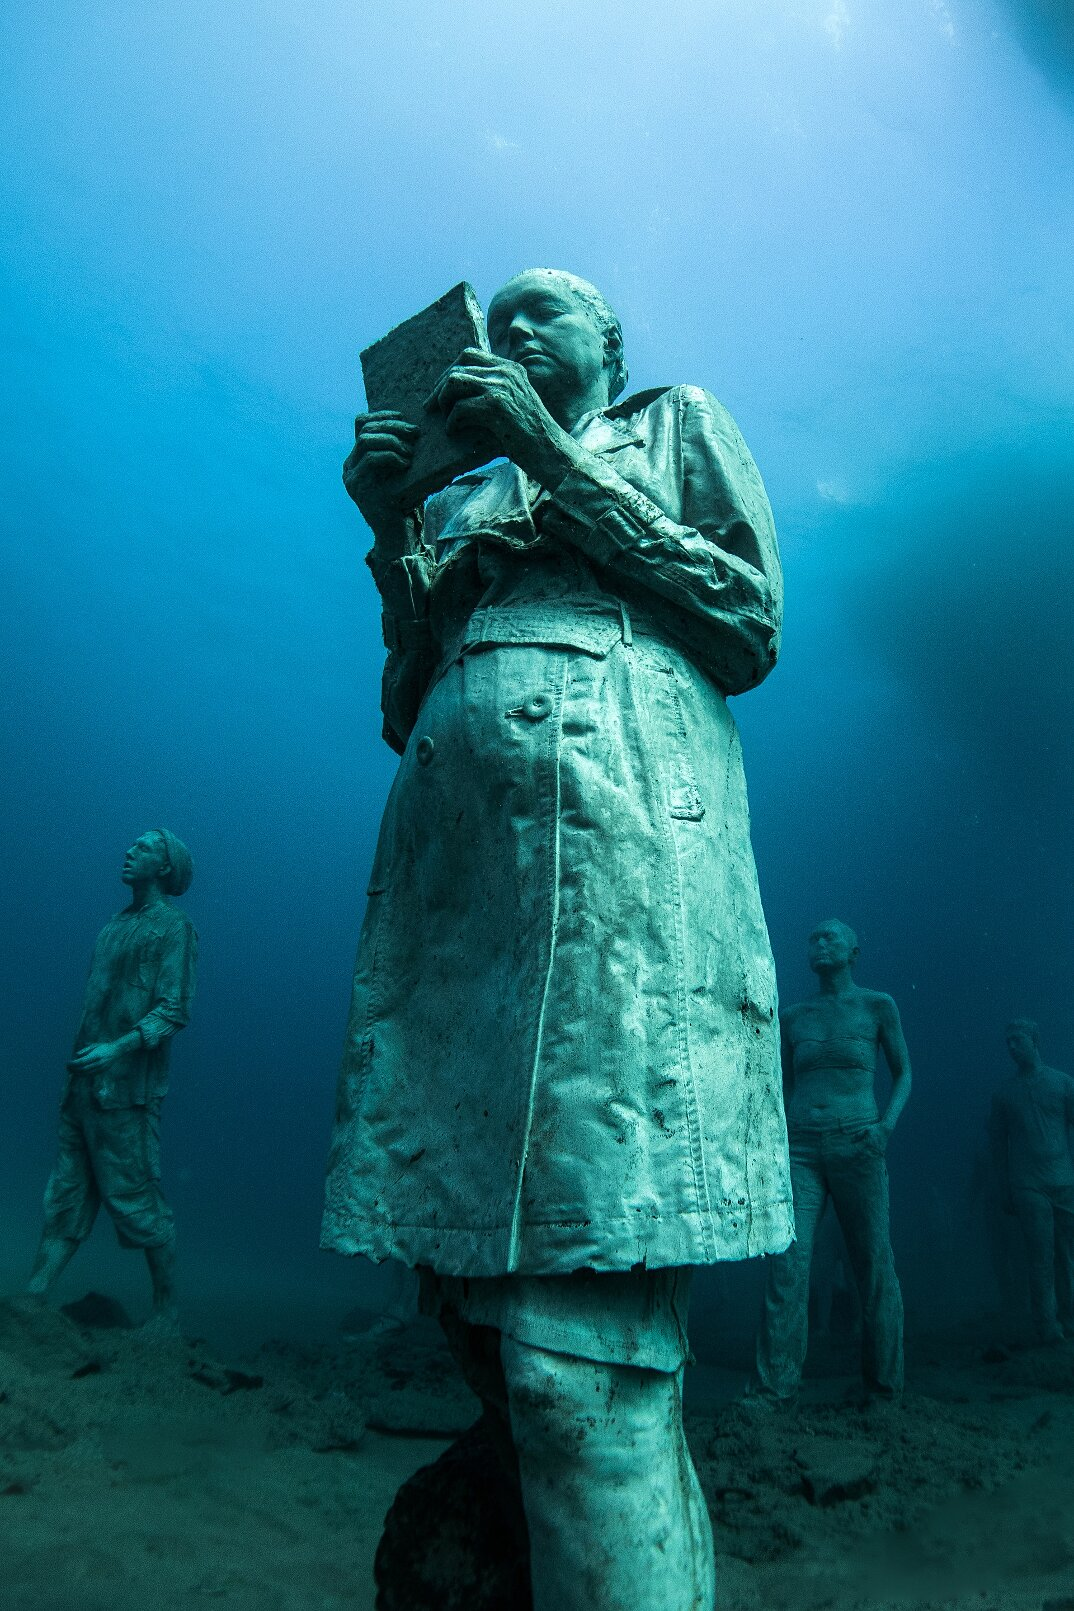 sculture-sottomarine-museo-atlantico-jason-decaires-taylor-03